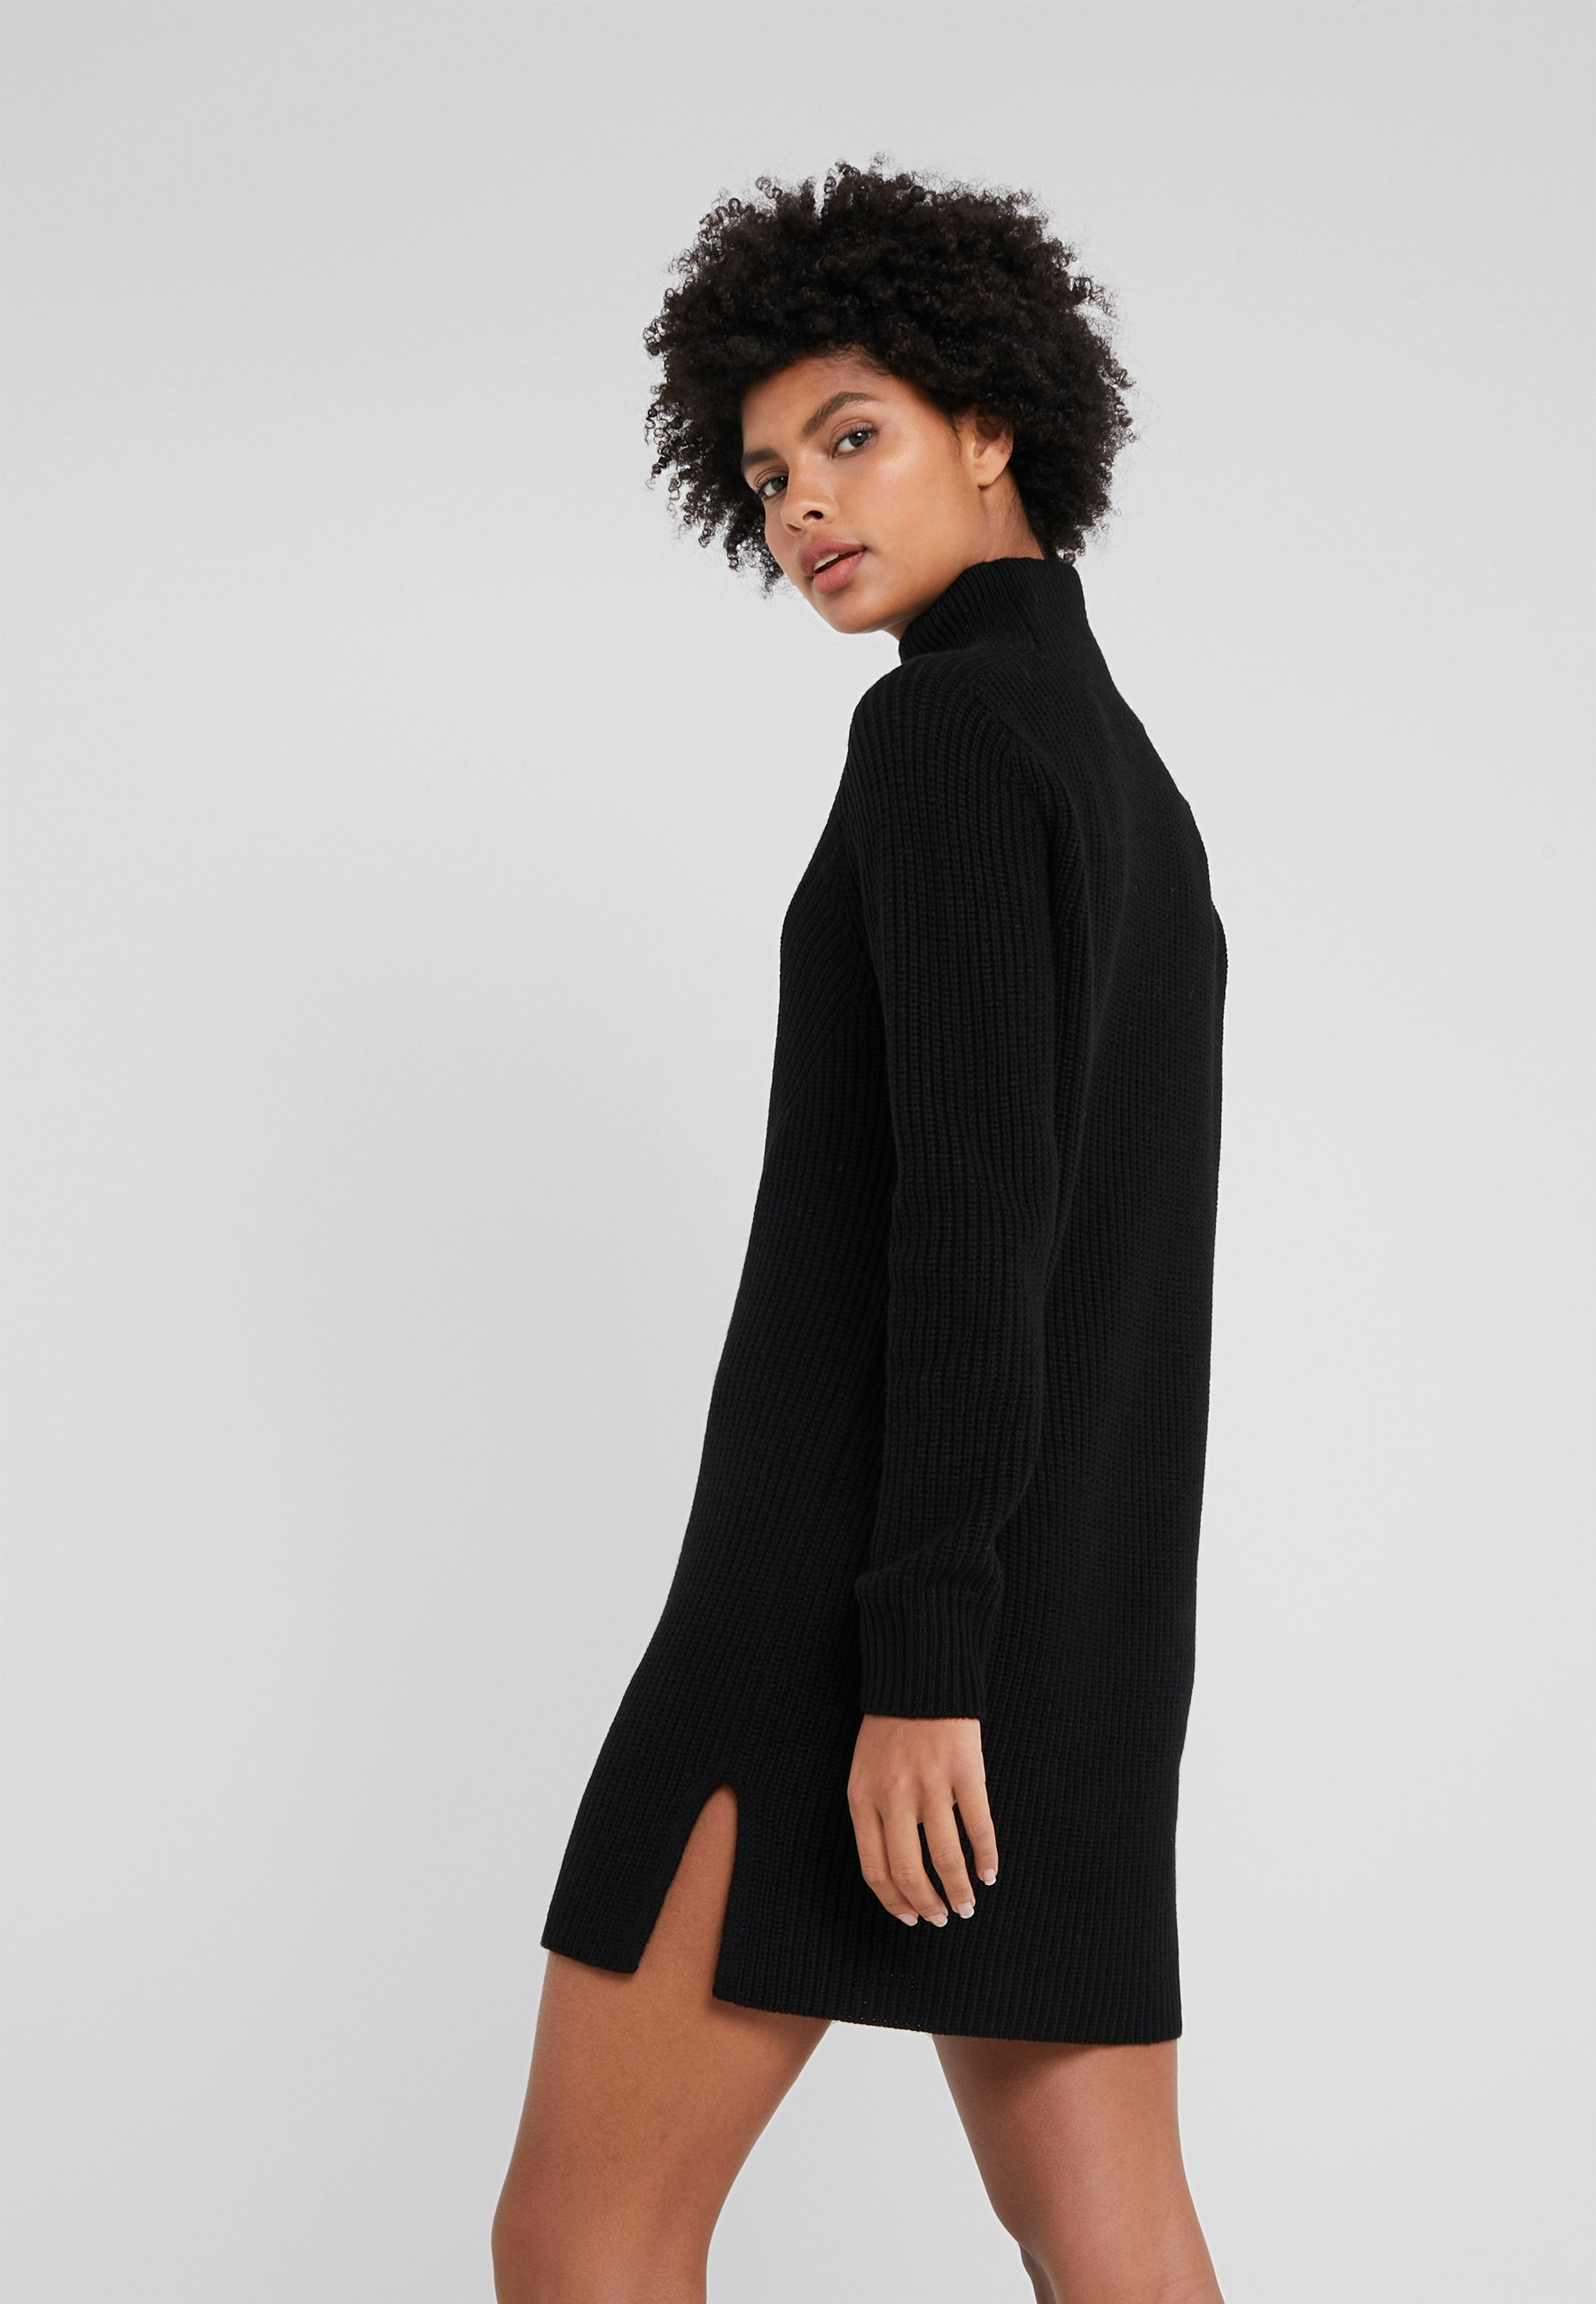 Repeat Pull Pull Black Repeat DressRobe Pull Repeat DressRobe Repeat Black DressRobe Black gyIbf7vY6m